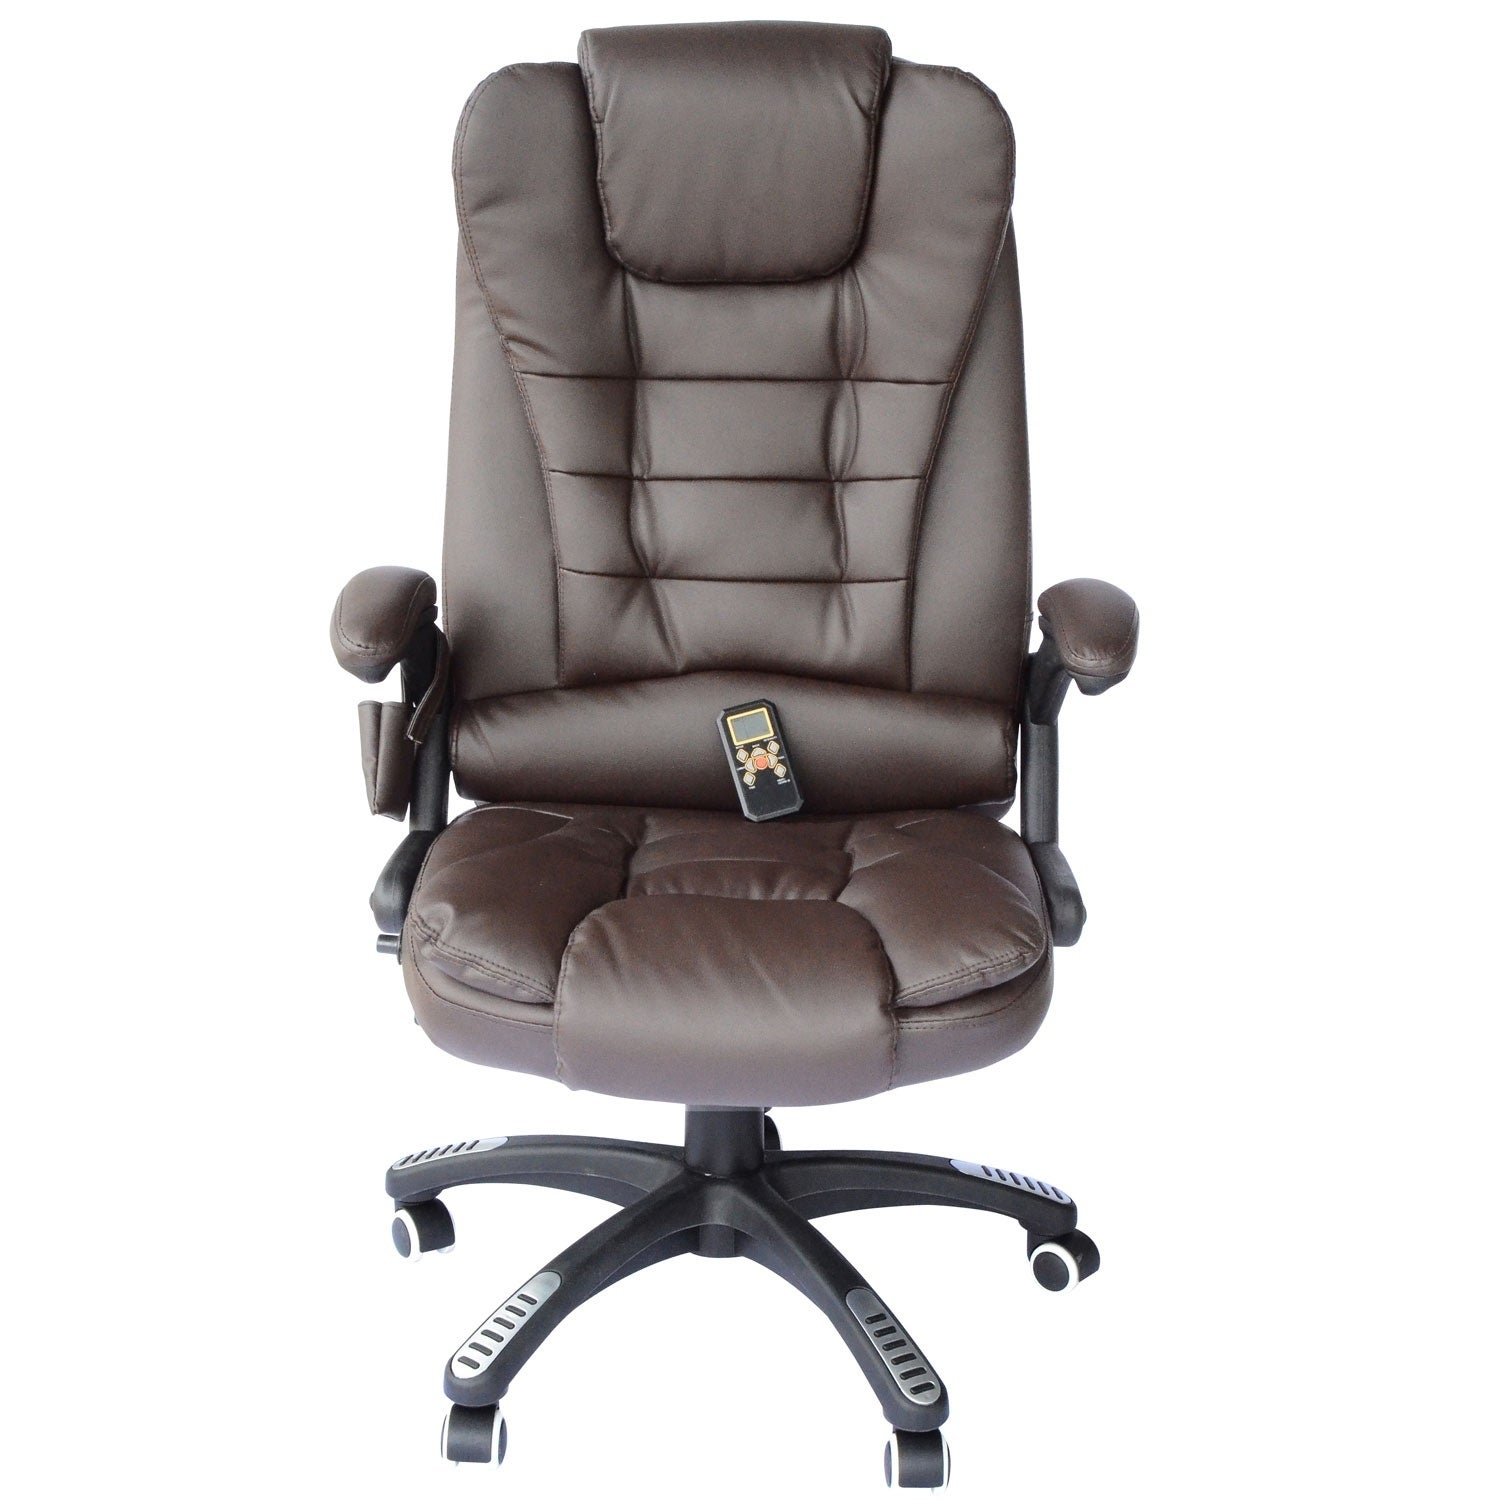 Shop HomCom Executive Ergonomic Heated Vibrating Mage Office ... on heated chair cushion, vibration chair, heated chair mat, heated outdoor chair, bathroom chair, vibrating gaming chair, heated clinical chair, china chair, heated back massager for chairs, heated chair cover, heated seat pads for chairs, heated folding chair, heated recliner chairs, heated ergonomic chair, heated bean bag chair, heated desk chair pad, heated massage chair, person on a vibrating chair, heated camp chair, heated lounge chair,